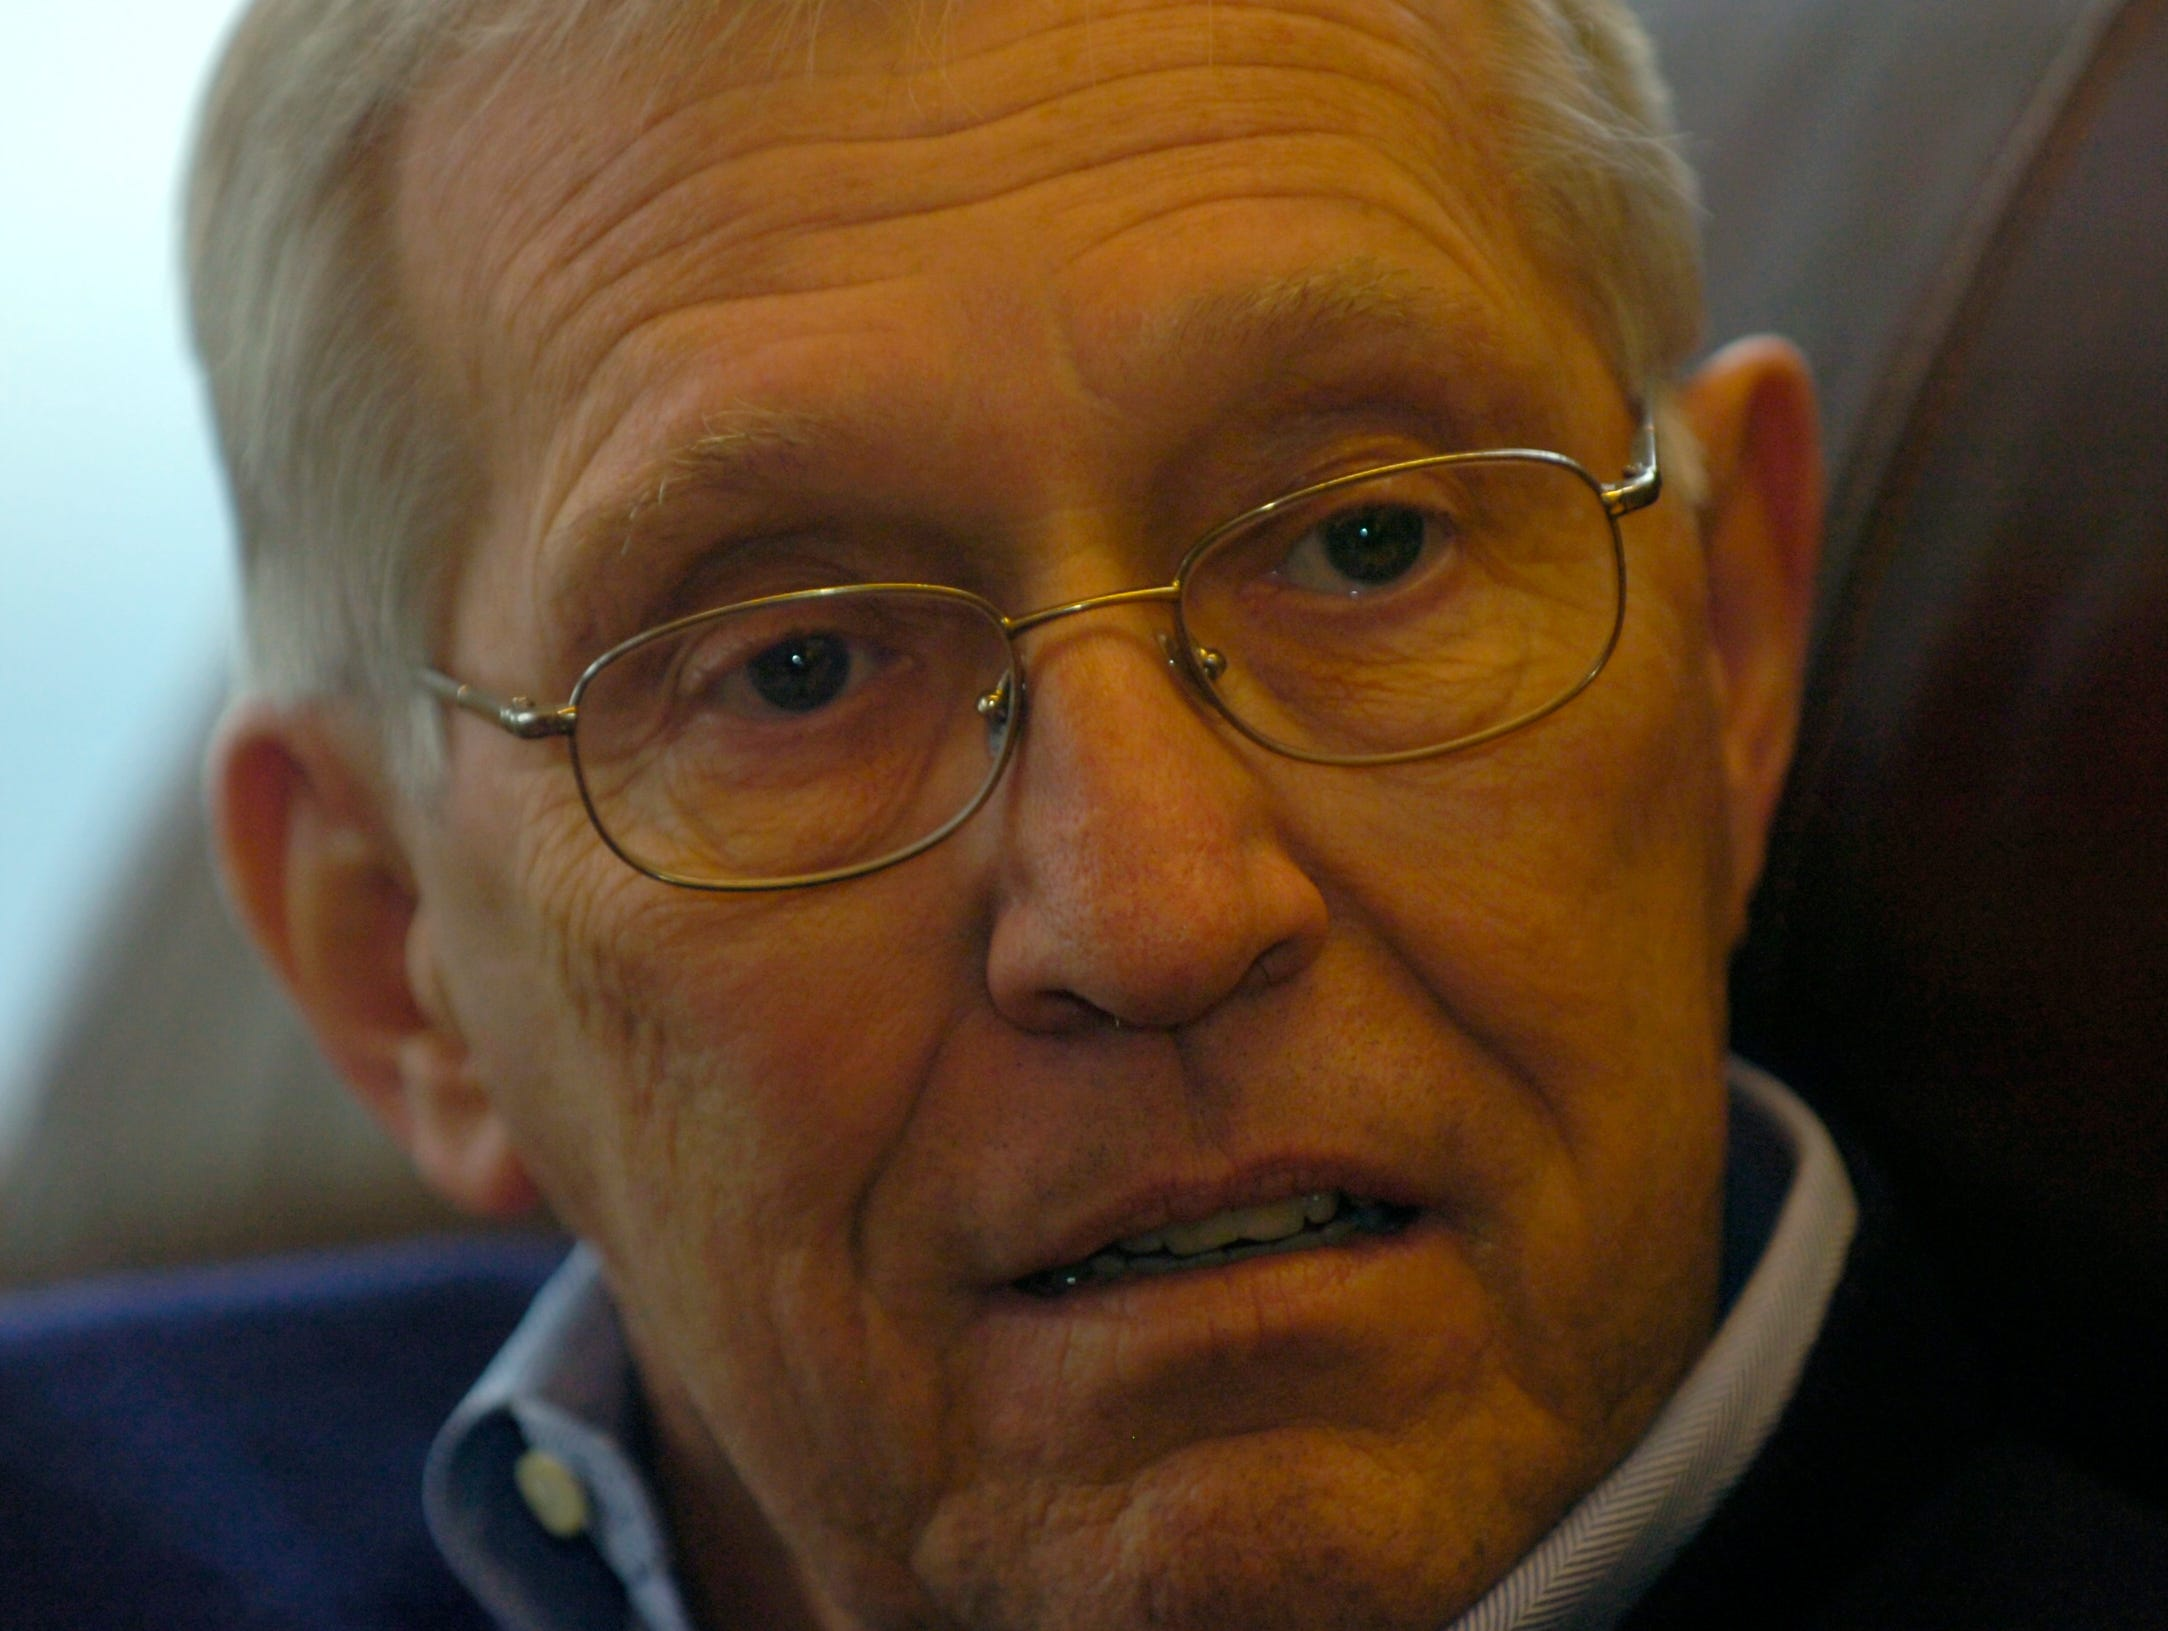 Former Tennessee Governor Don Sundquist gives an interview at his home in Laurel Valley, located in Townsend, TN. Sundquist served as governor from 1995 to 2002.